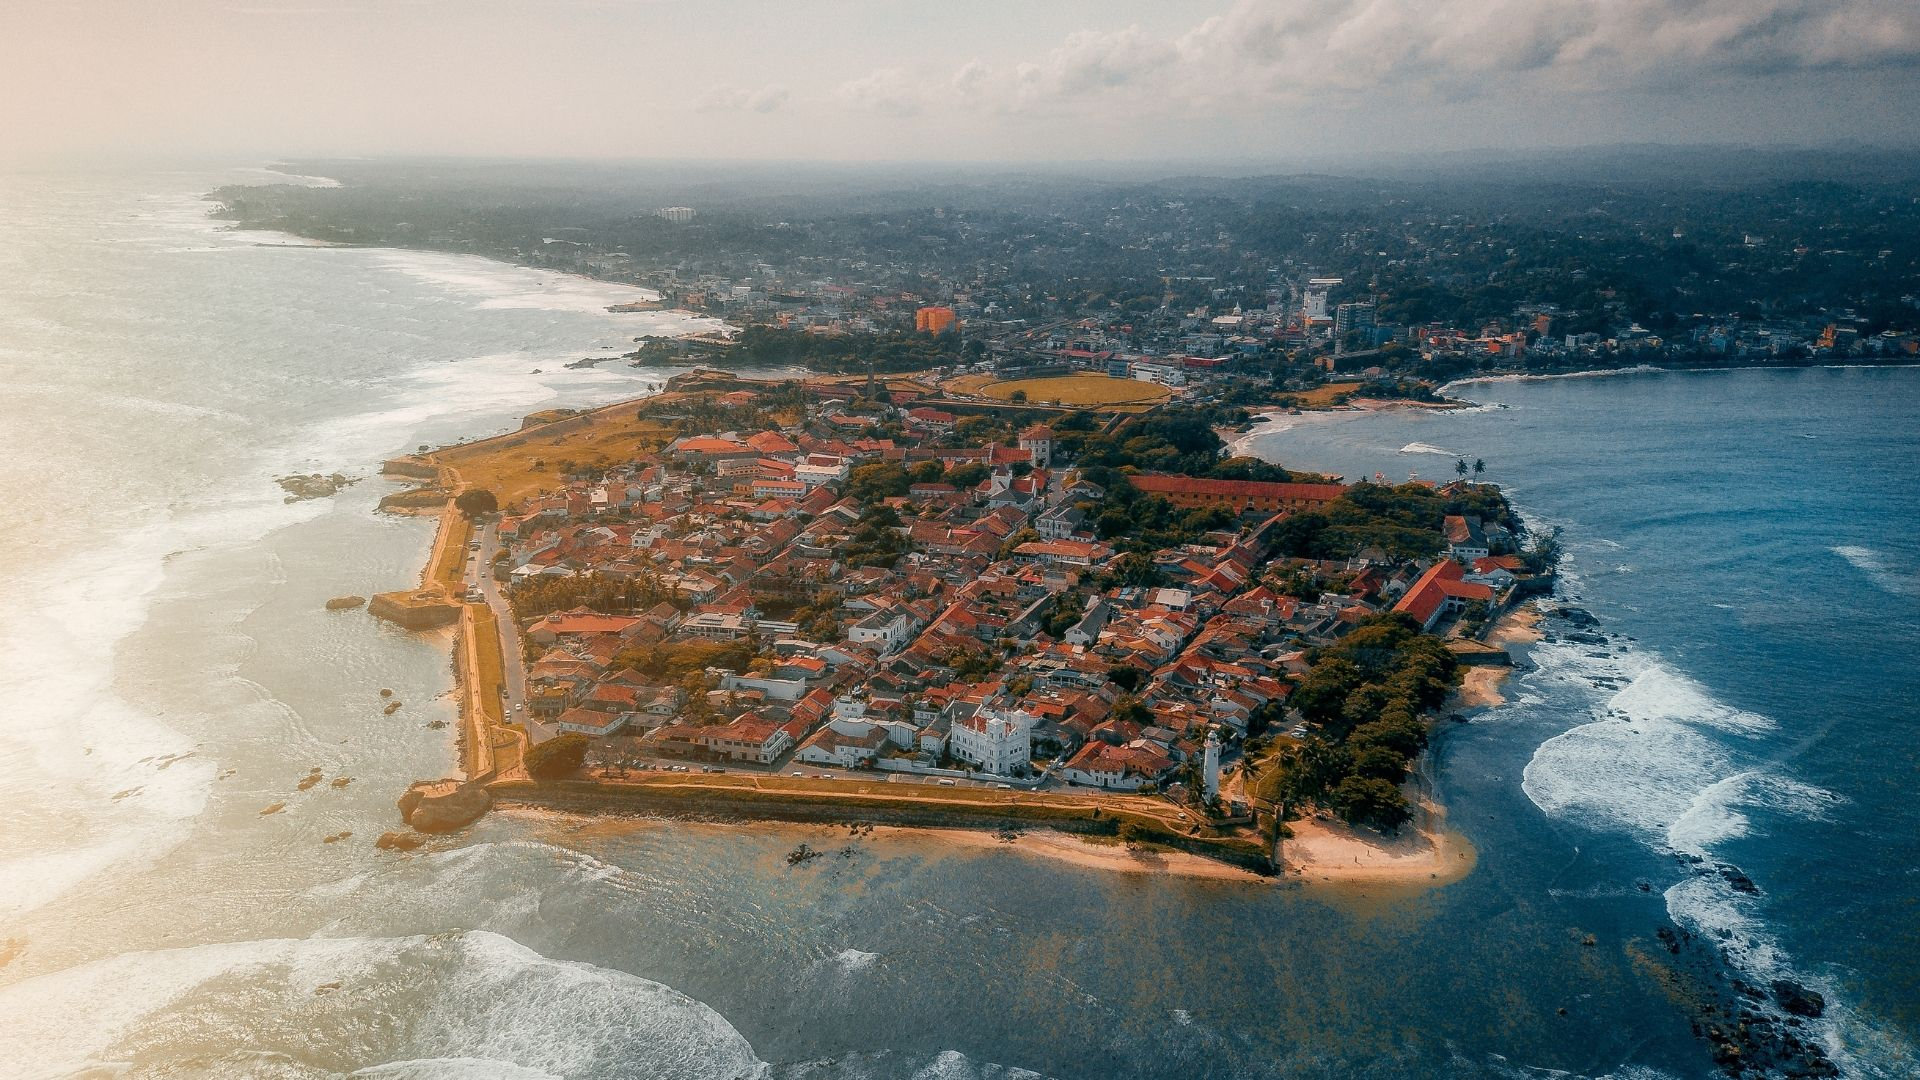 Aerial image of Galle Fort